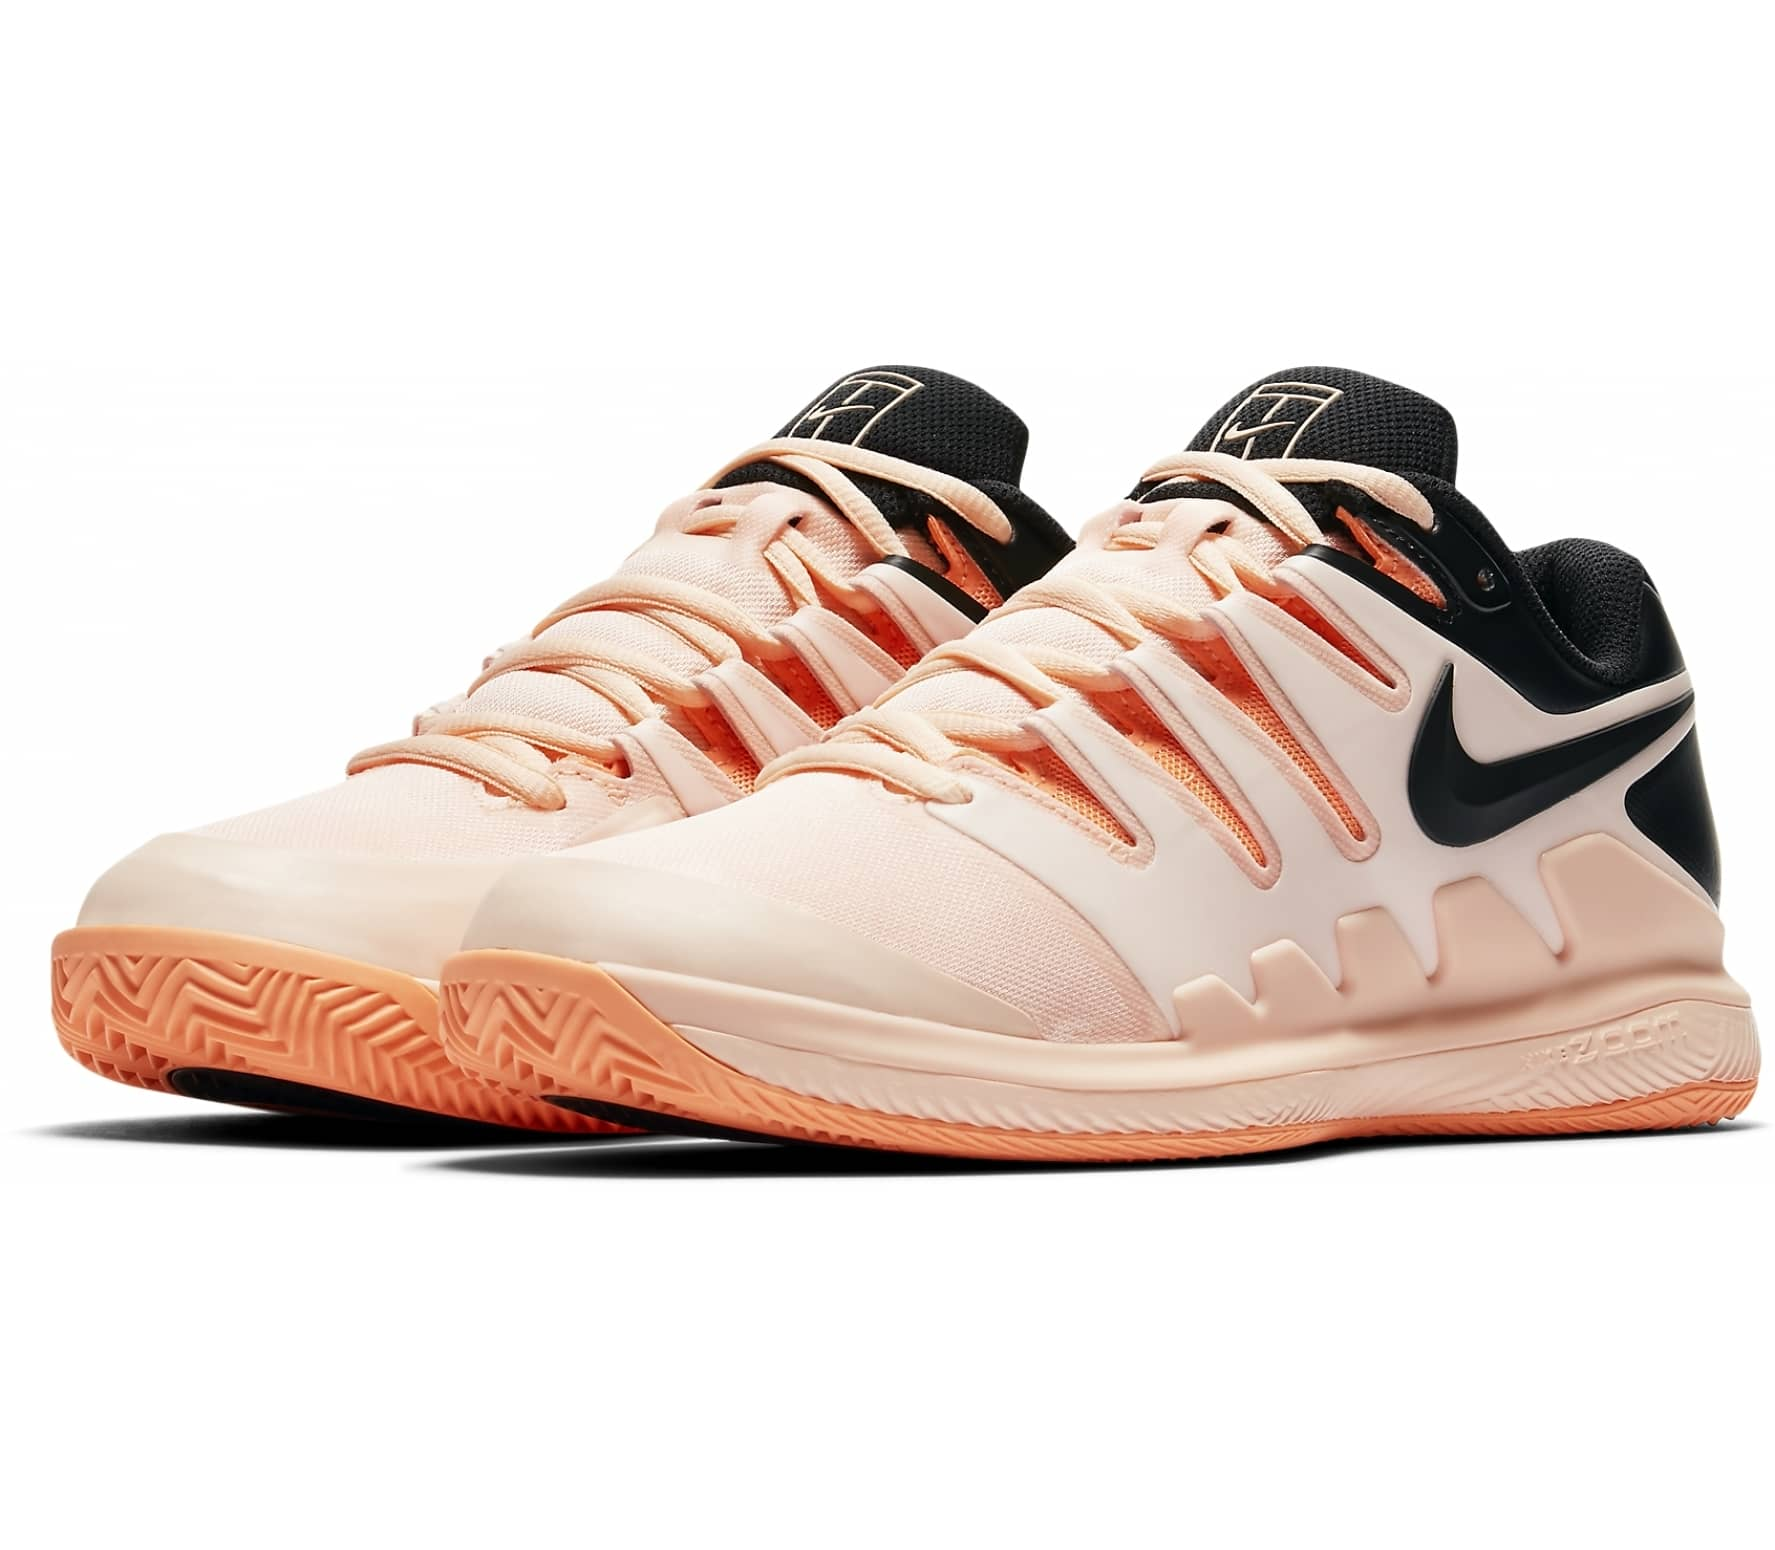 new style 18126 a9976 Nike - Air Zoom Vapor X Clay womens tennis shoes (hellorangeblack)